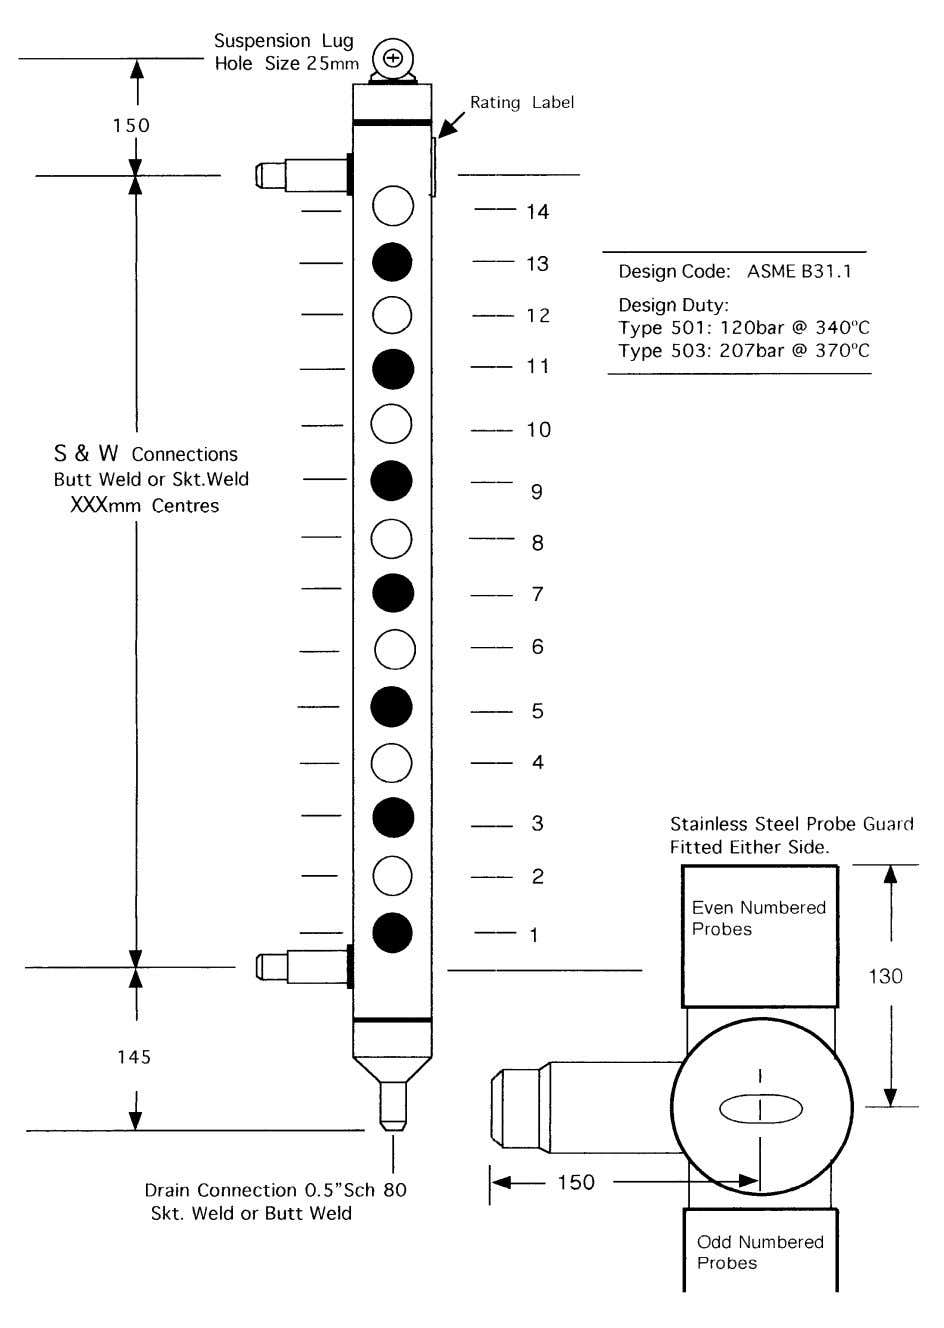 FIG 2.1 Side Arm Water Column 9